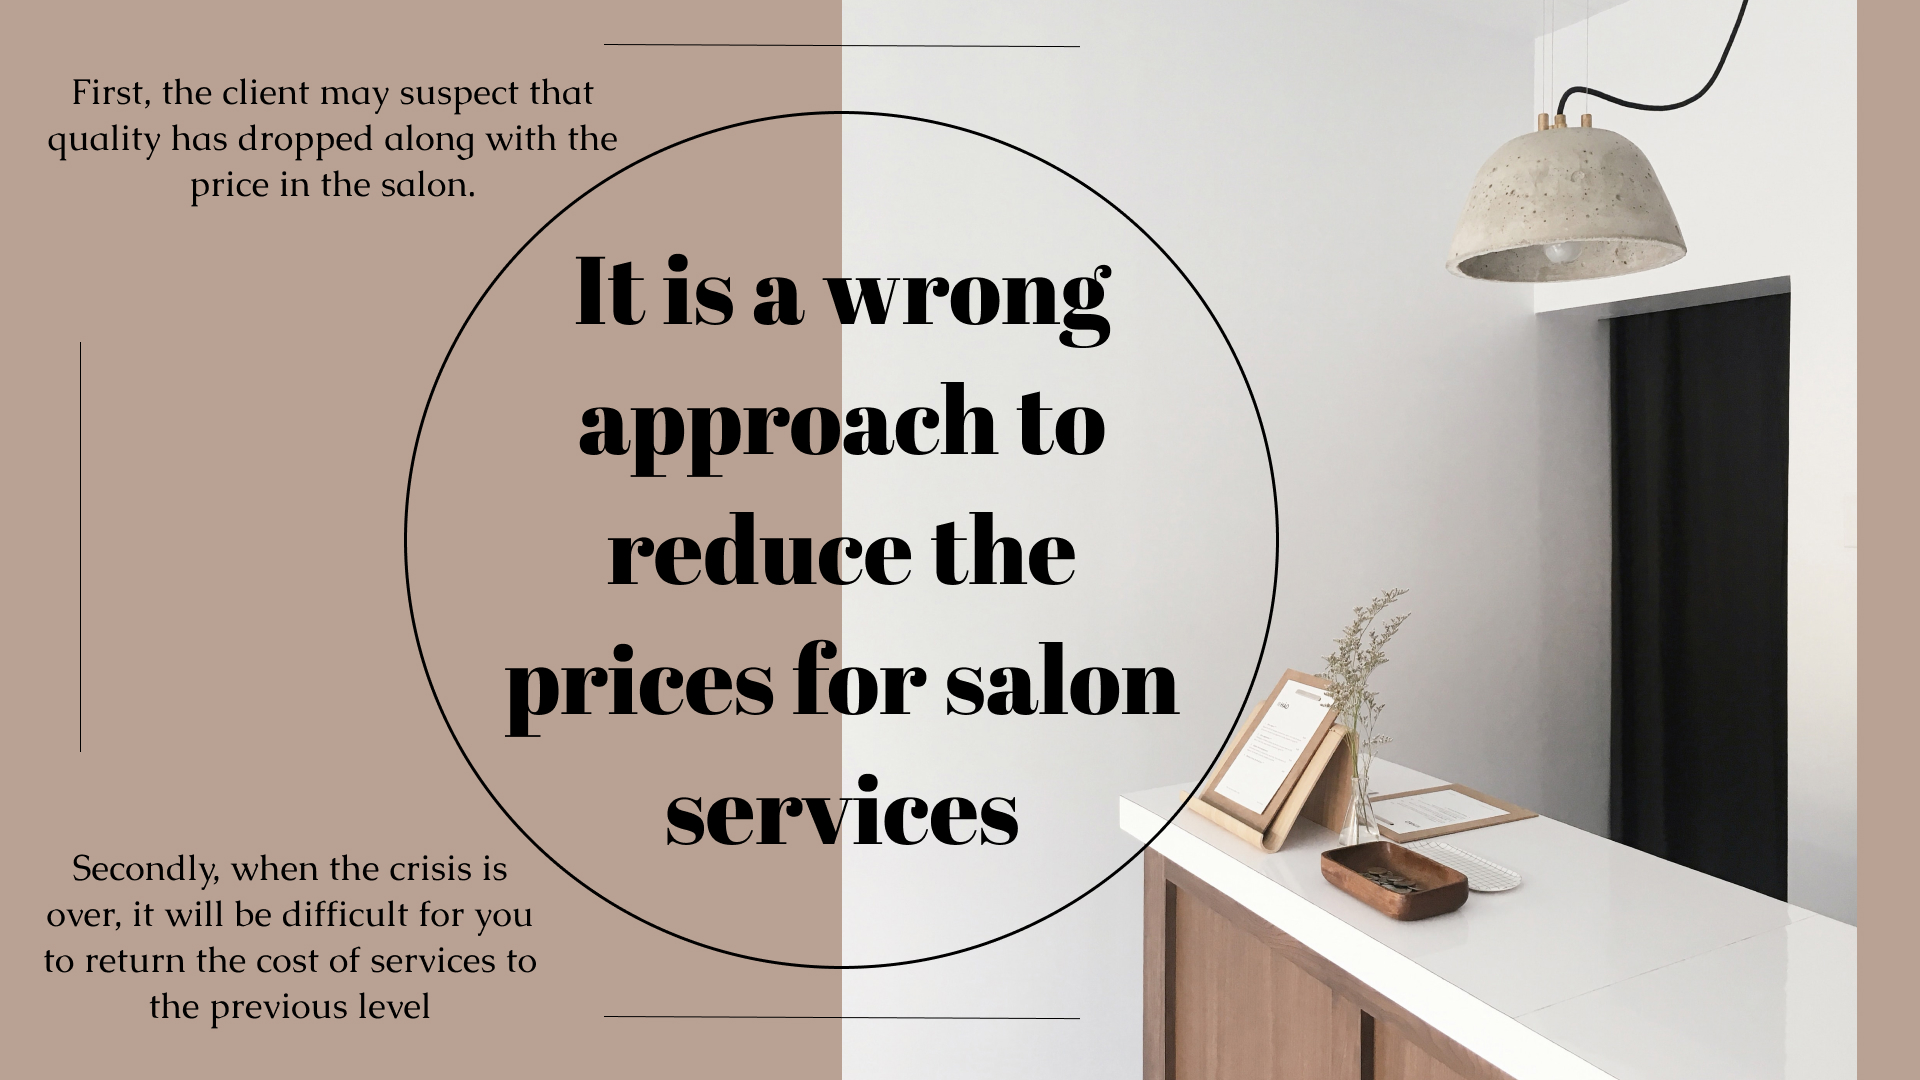 сrisis-management in a beauty salon